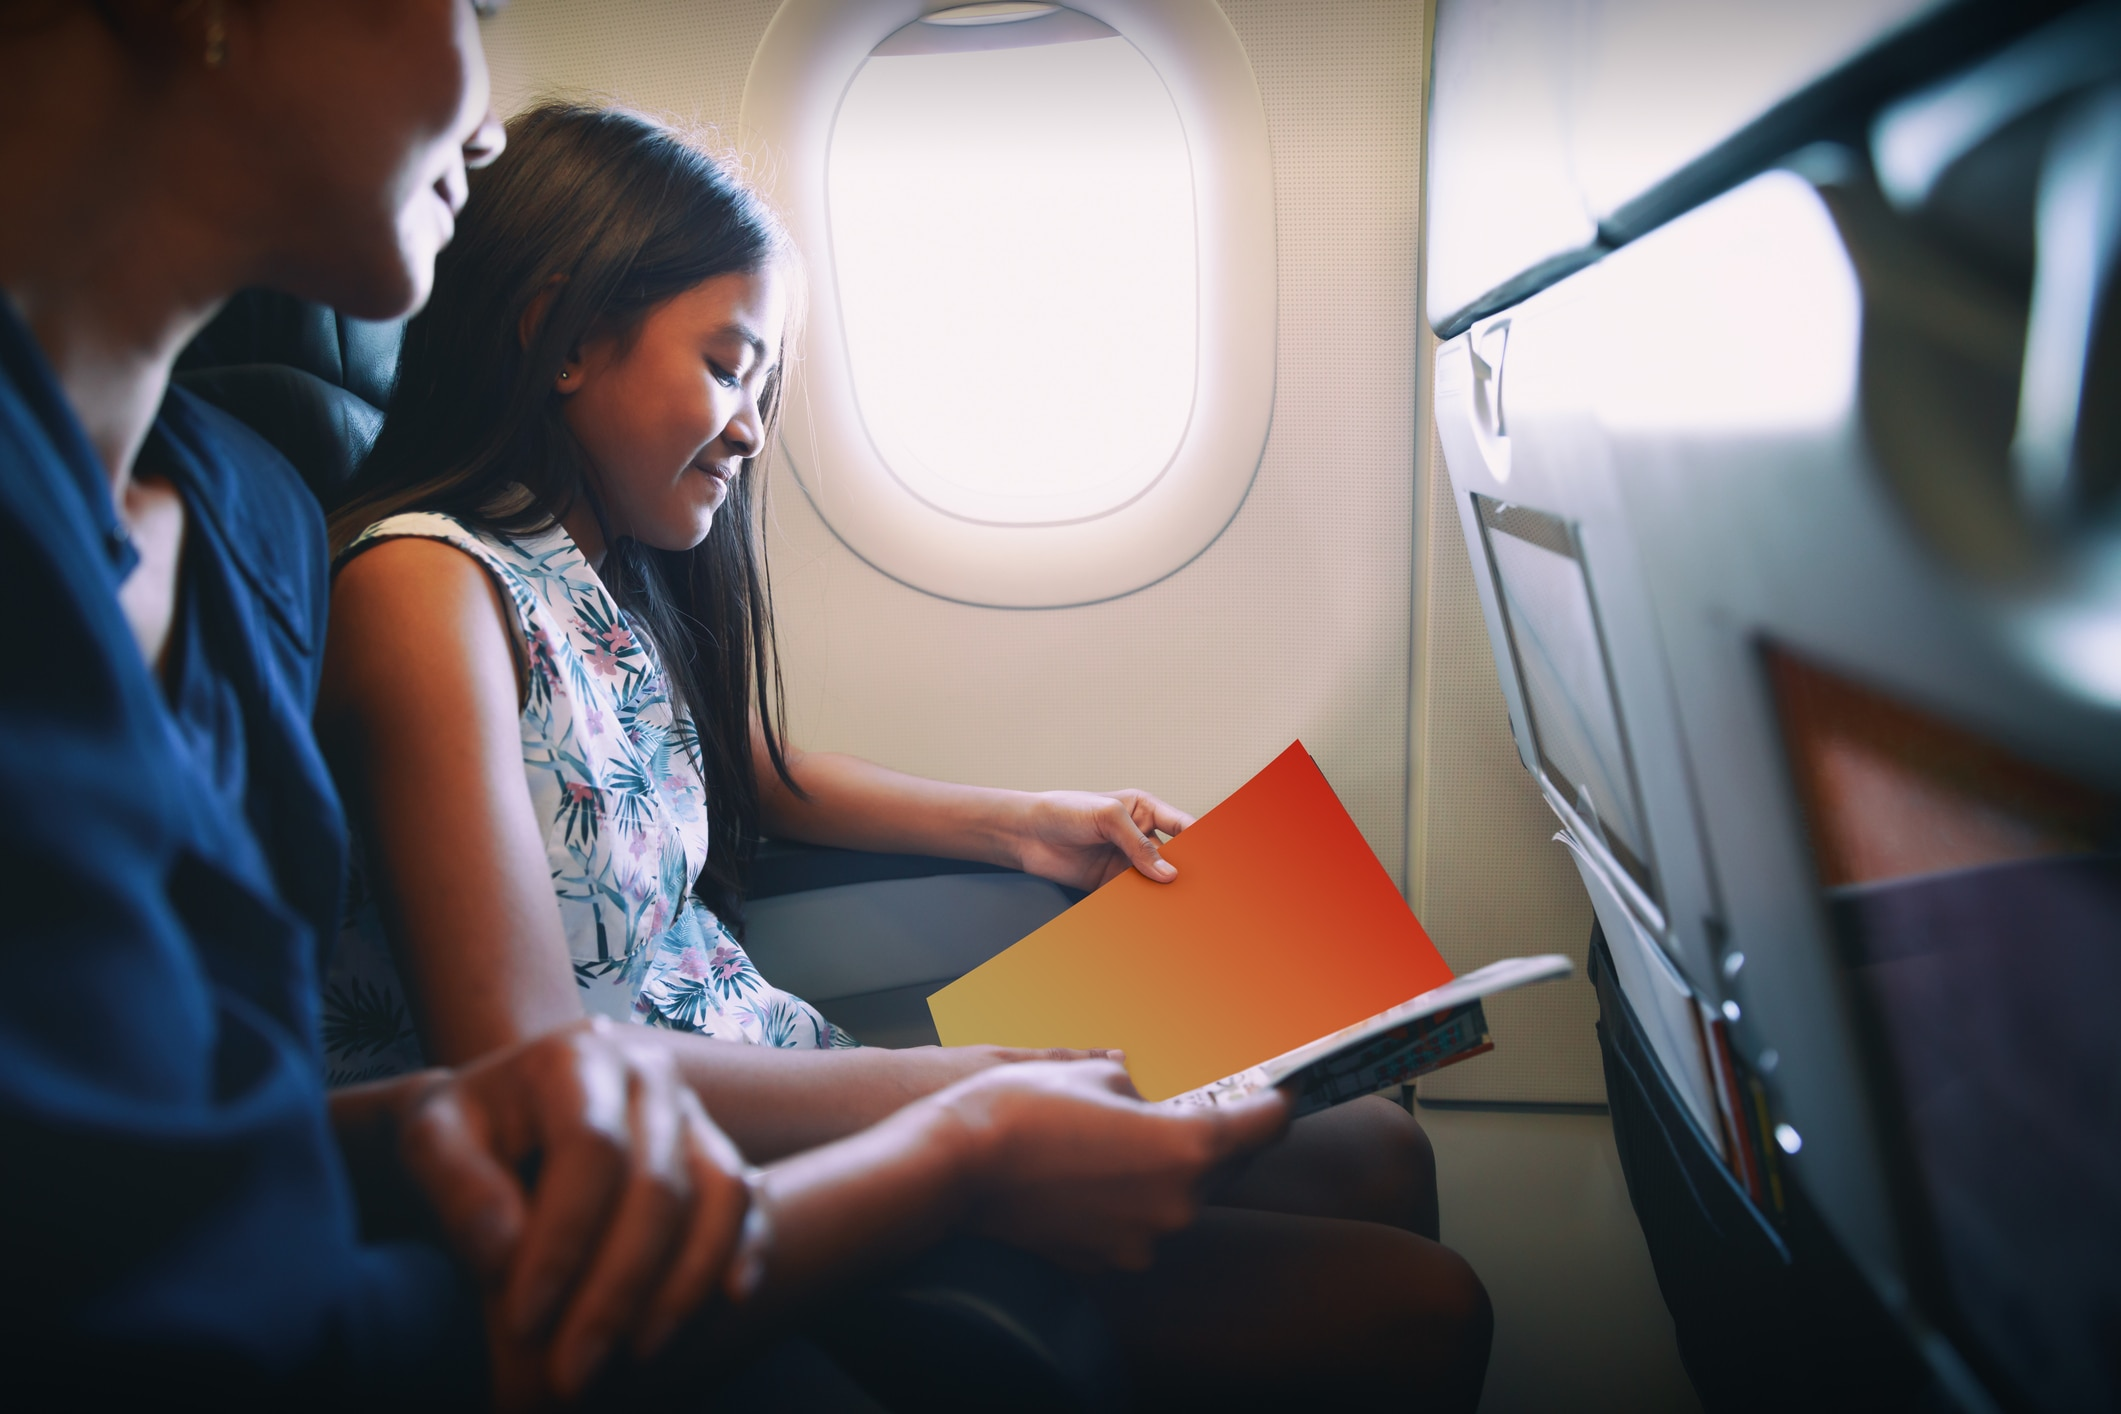 Mother with daughter sit on their place in airplane